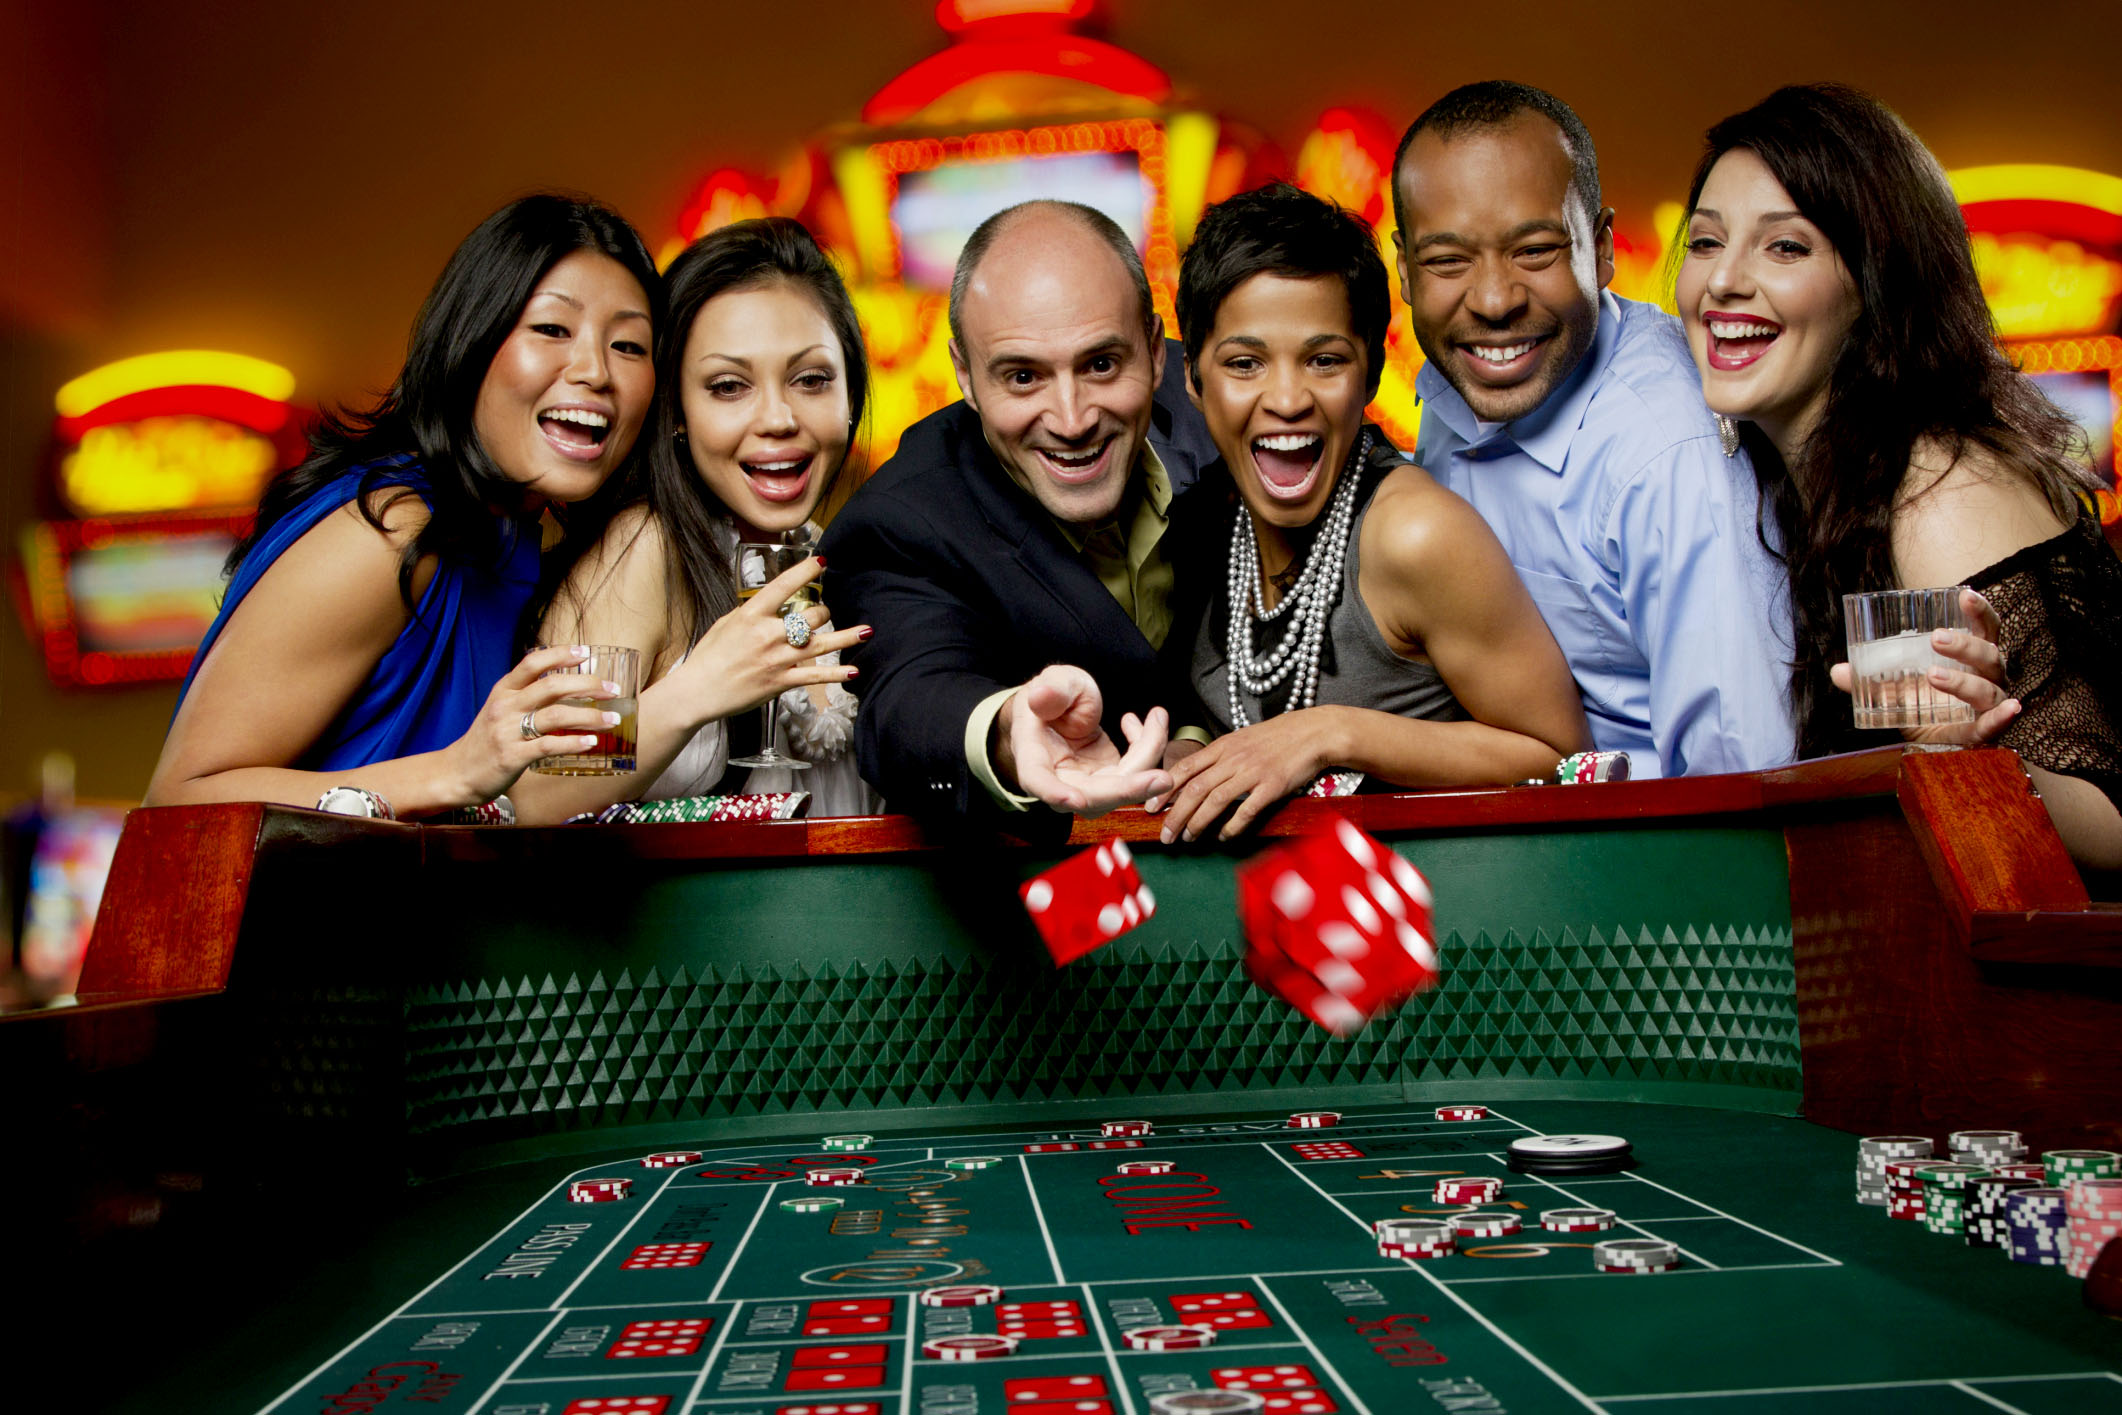 Seven on line casino slot machines